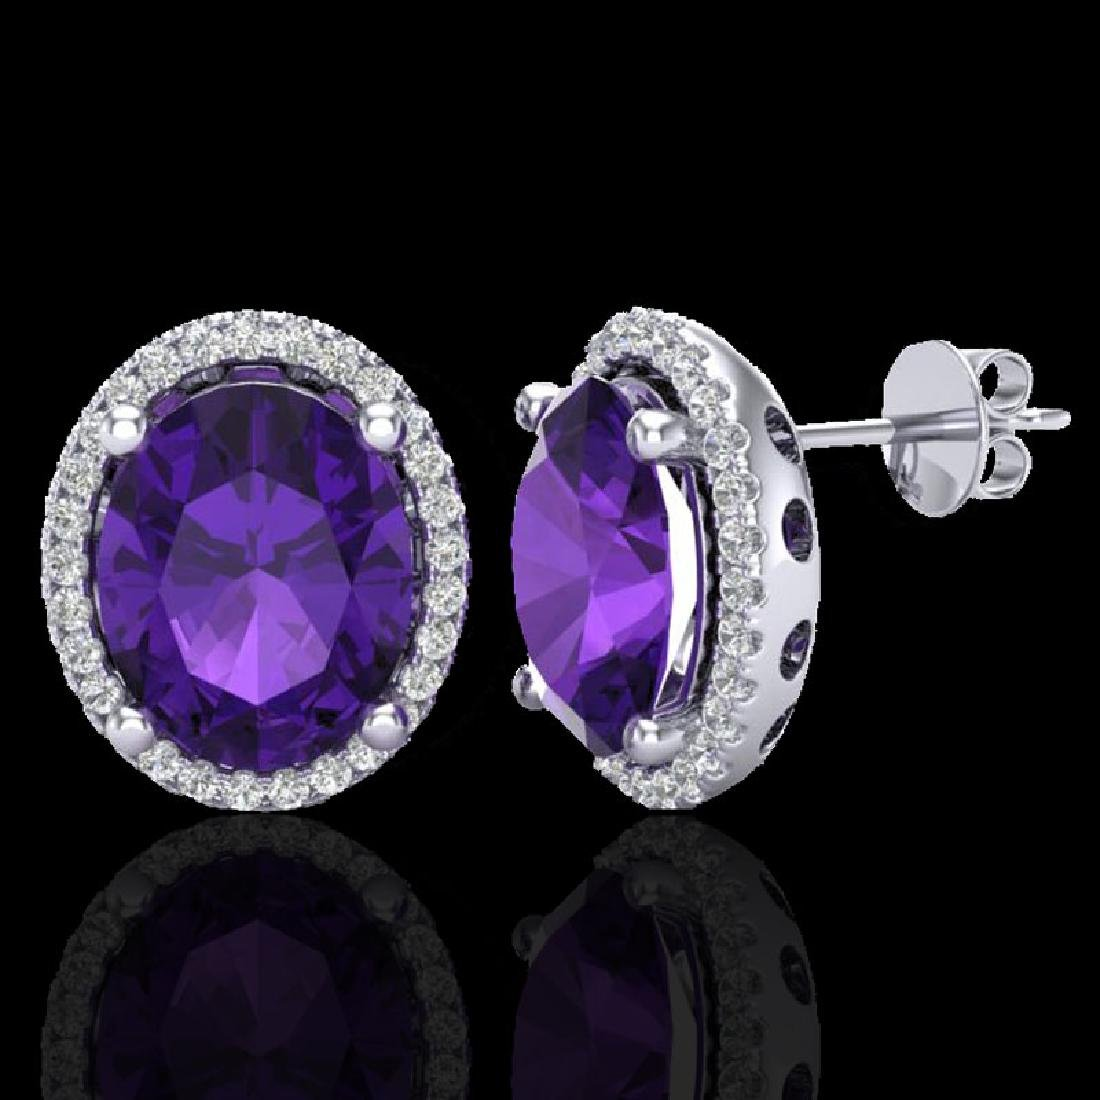 5 CTW Amethyst & Micro Pave VS/SI Diamond Earrings Halo - 2